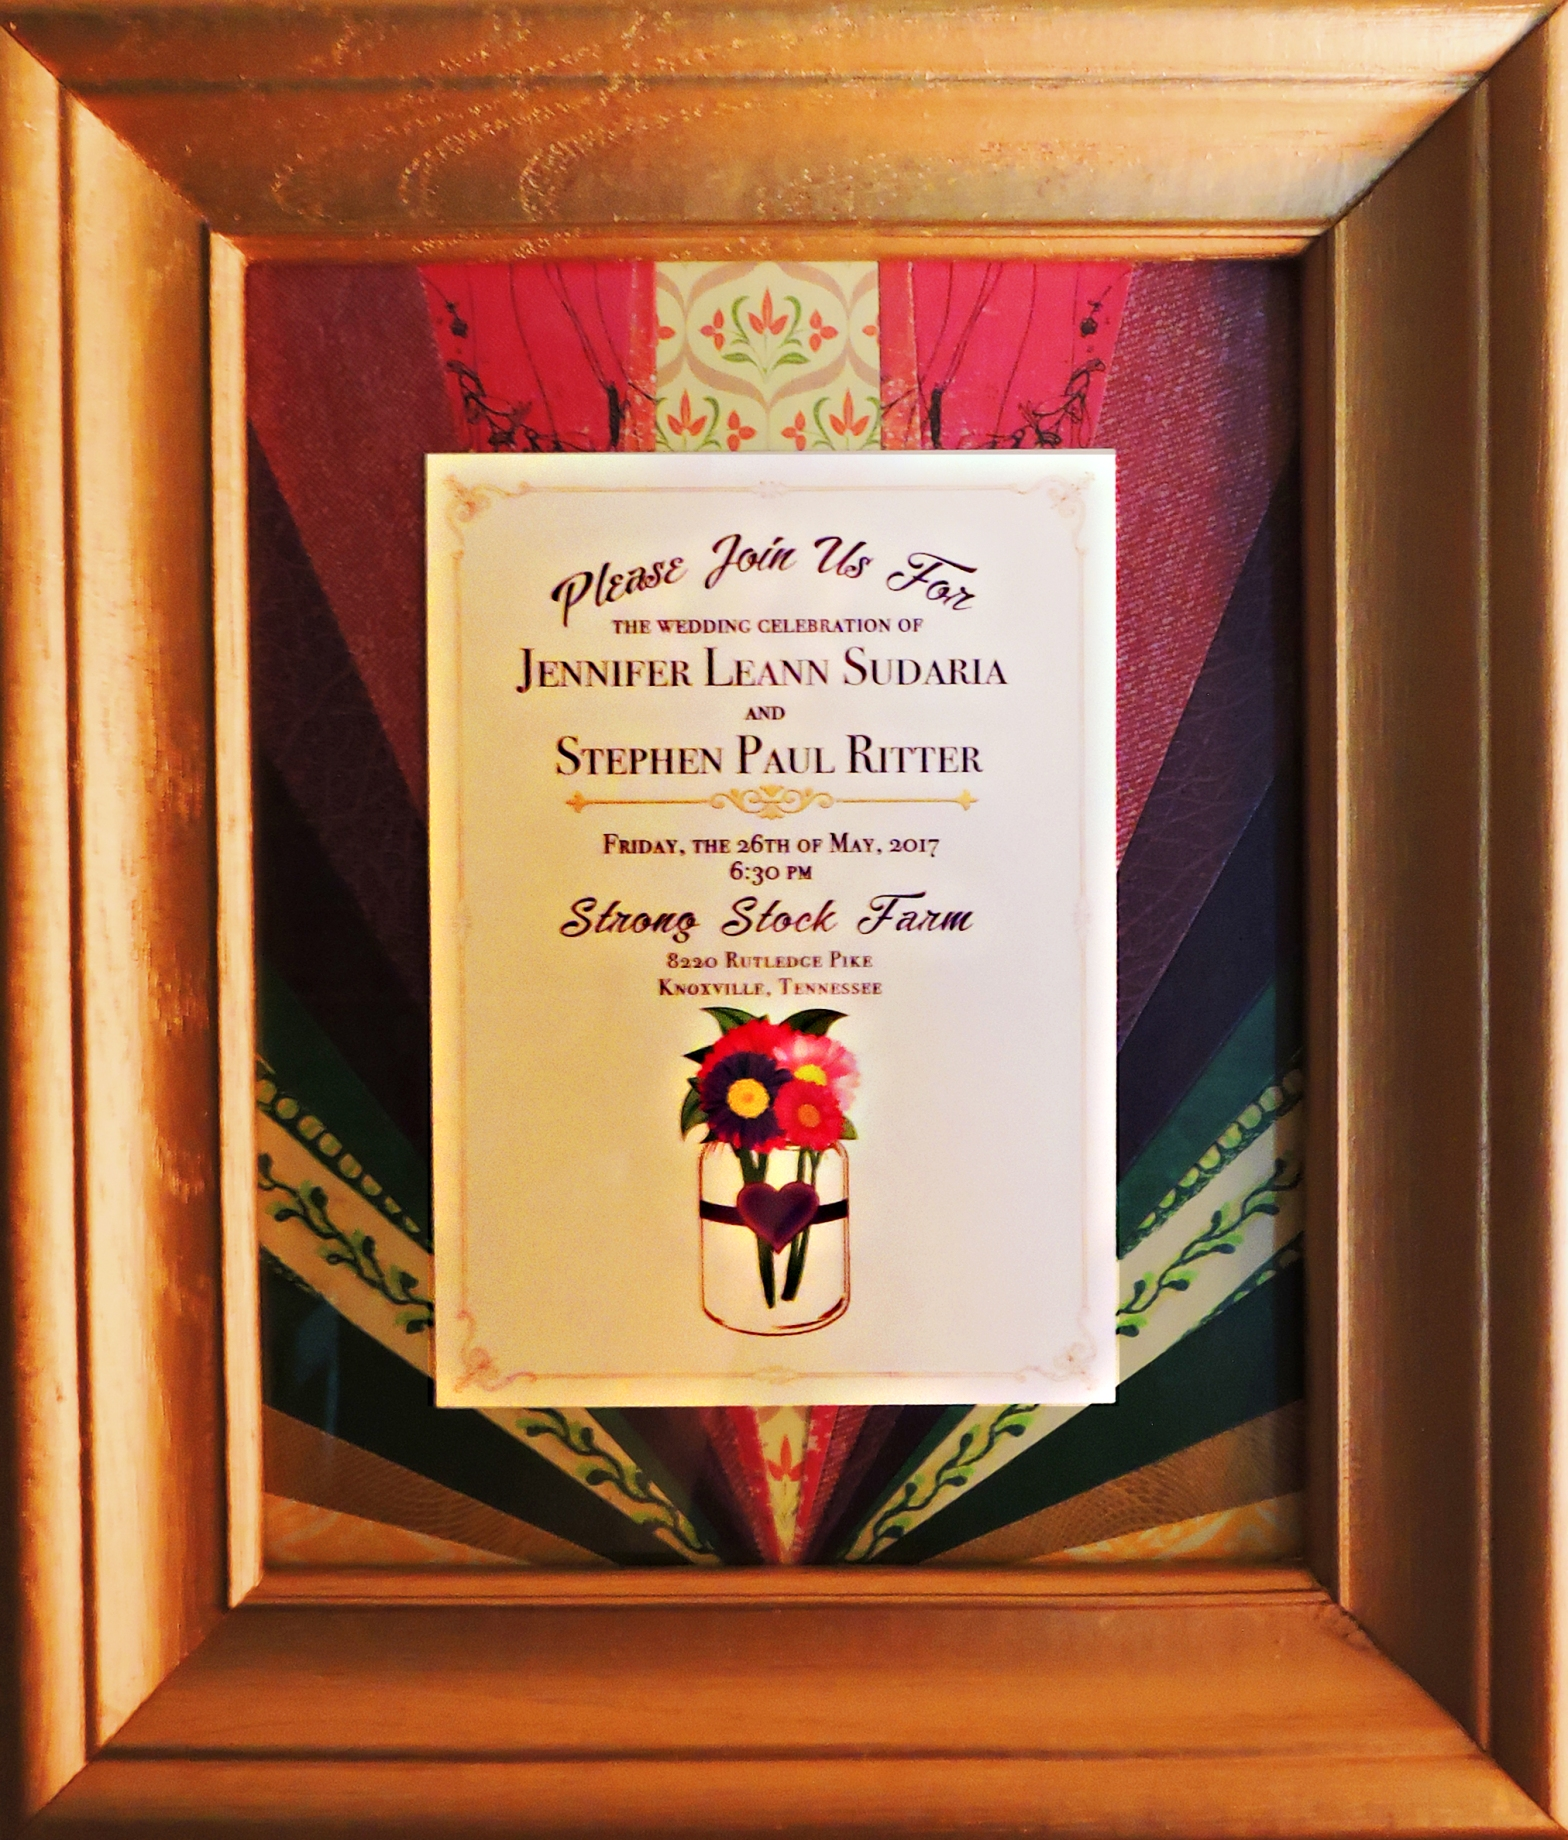 Jennifer and Paul's Wedding Invitation